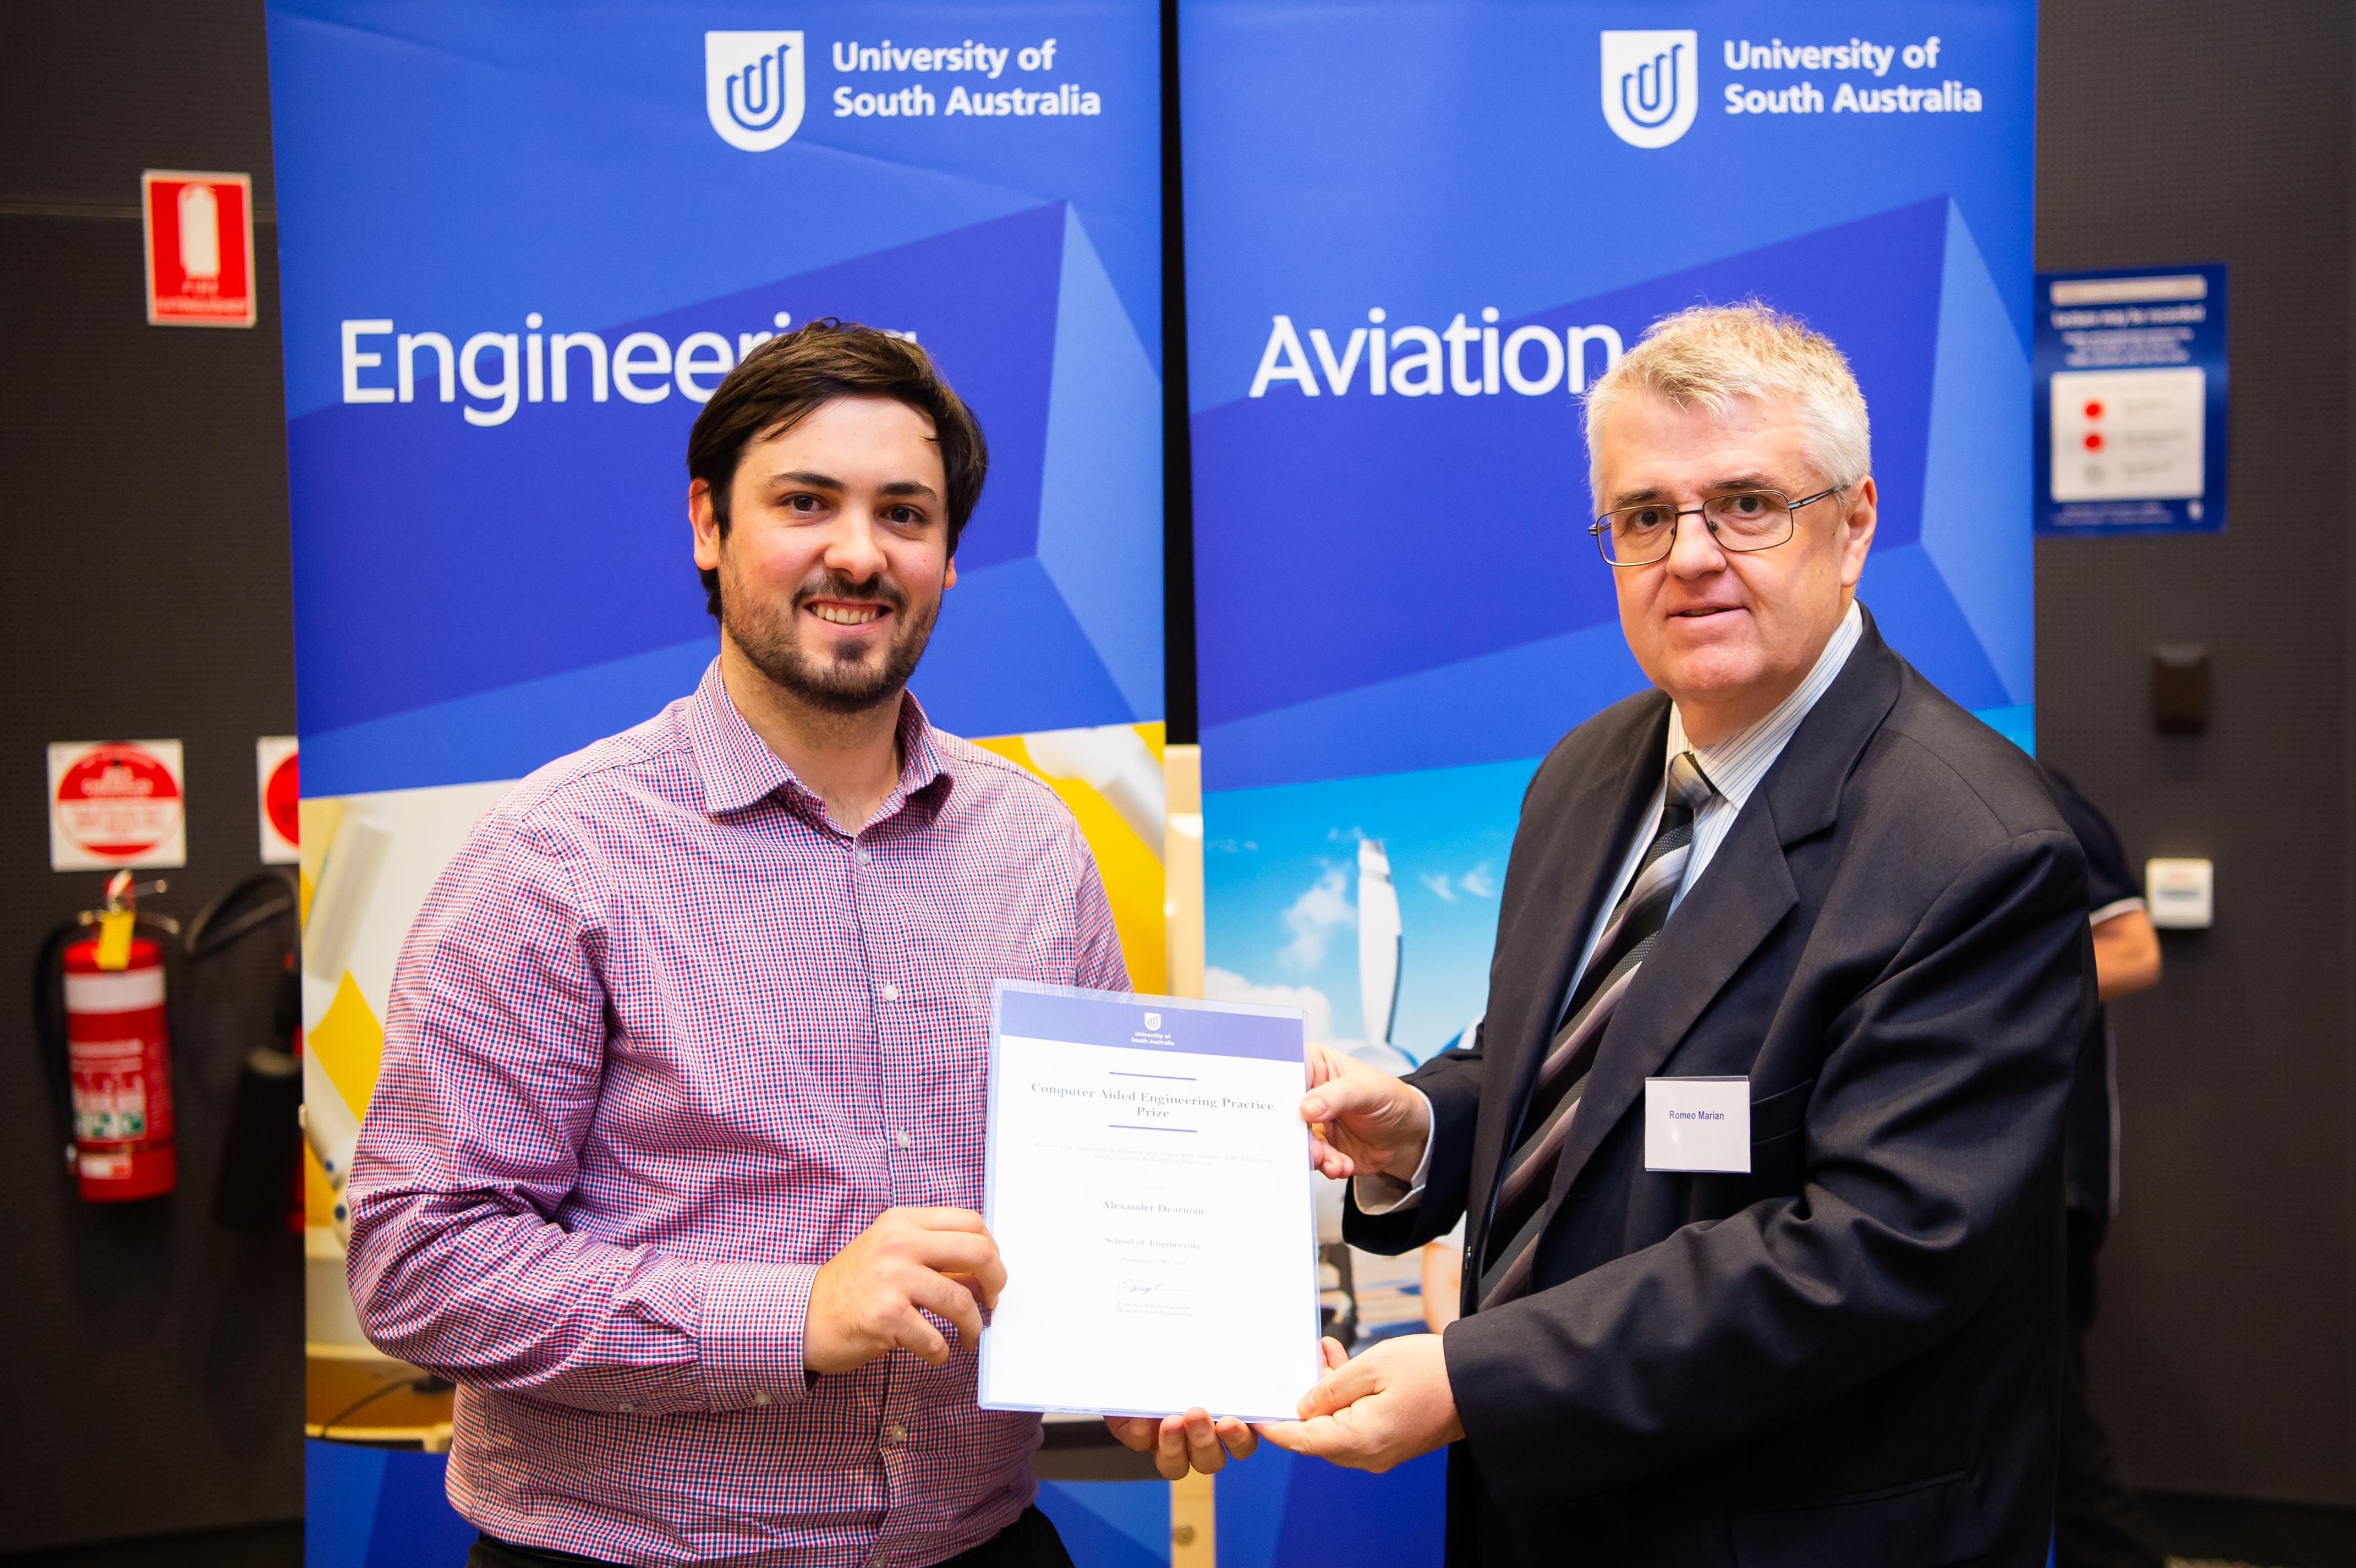 Applidyne intern recipient of two awards at the UniSA 2018 Engineering Prizes and Awards Ceremony